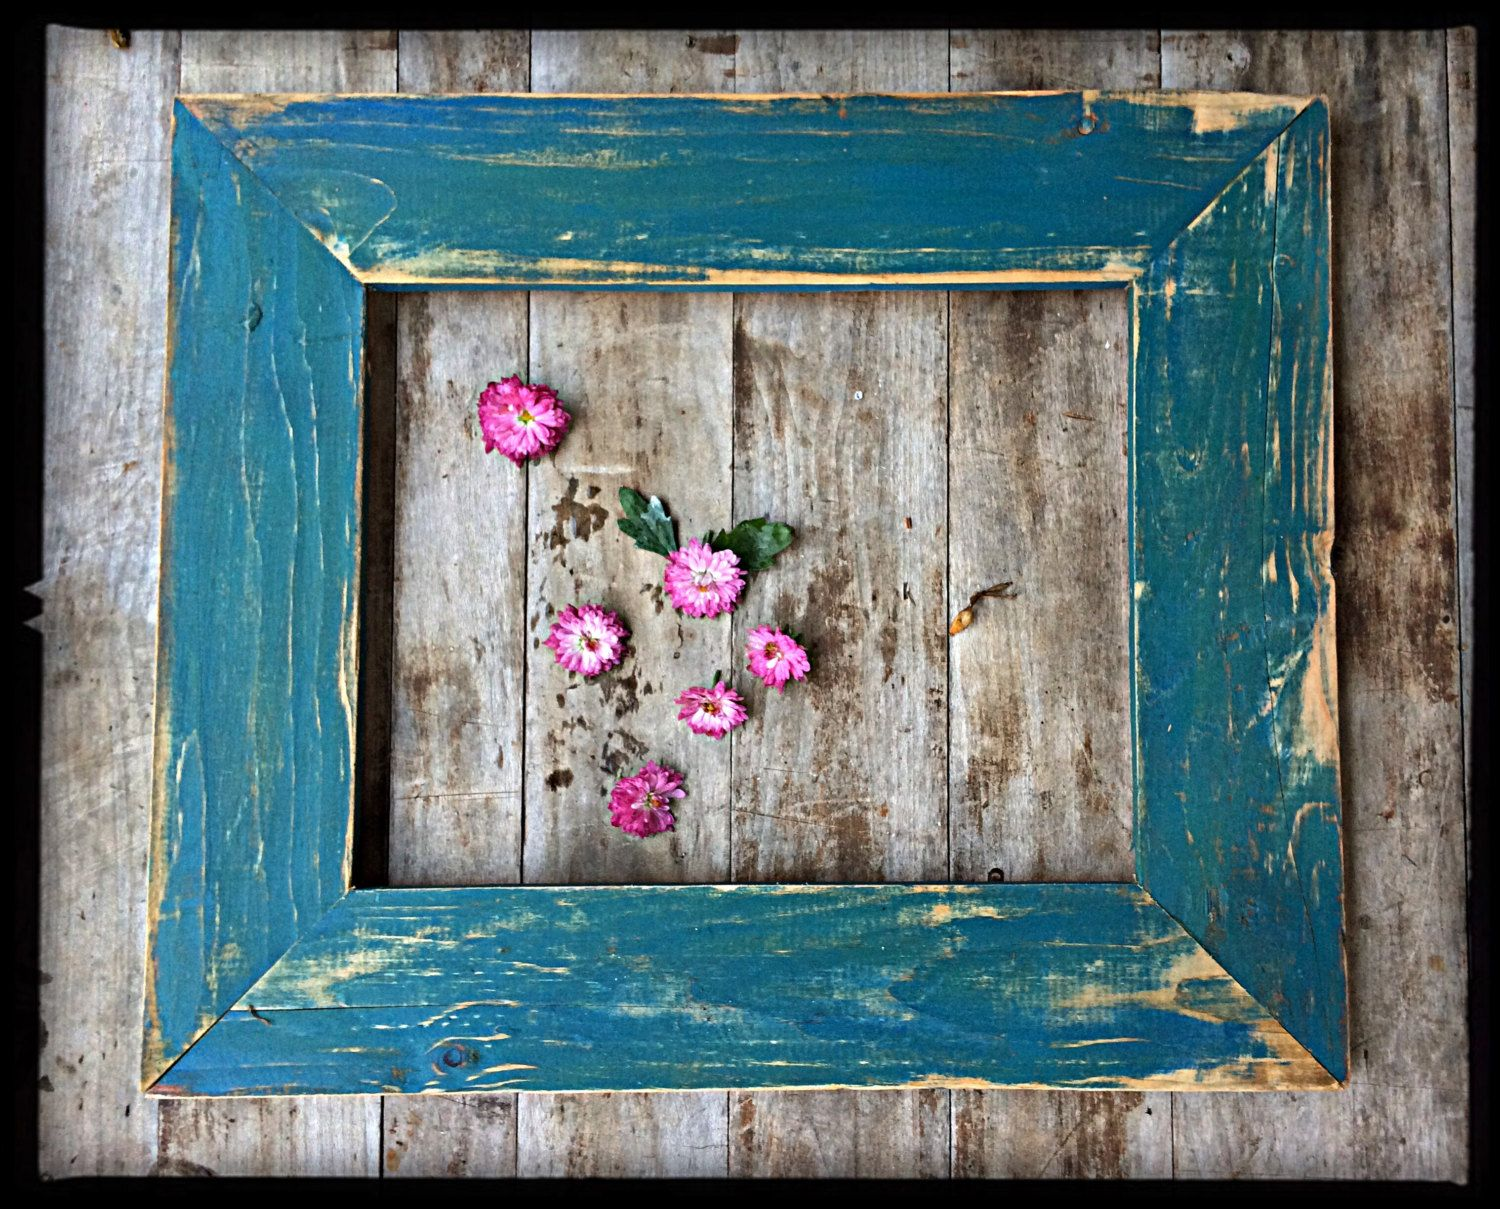 Rustic Decor 11x14 Distressed Teal Picture Frame Handmade Painted Frame Wall Decor 37 00 U Barn Wood Picture Frames Teal Picture Frames Rustic Decor